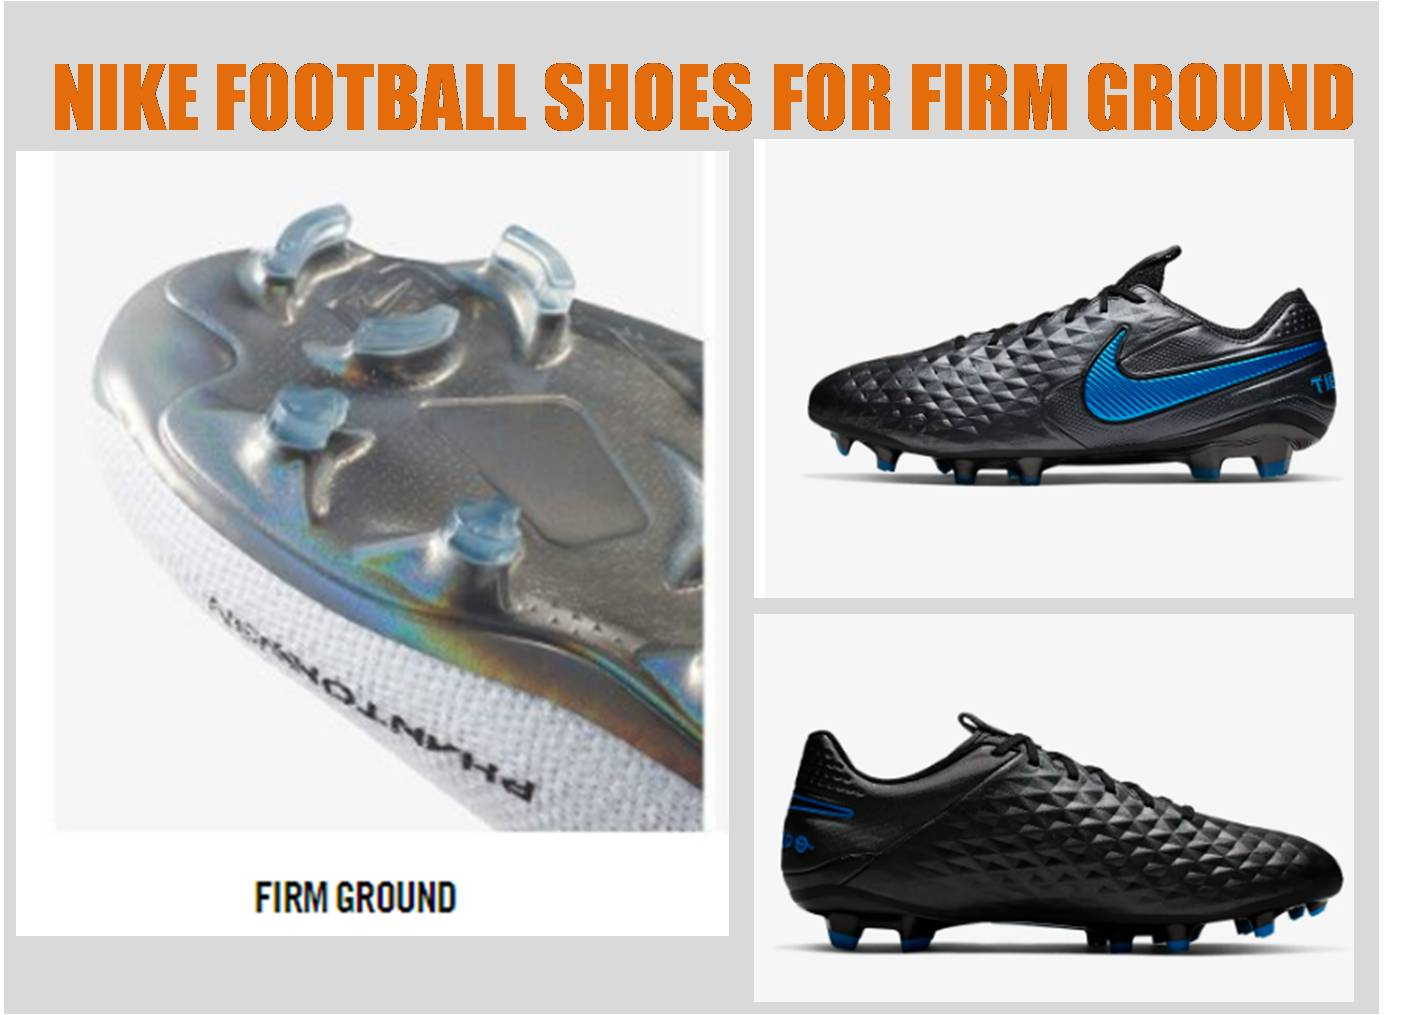 NIKE_FOOTBALL_SHOES_FOR_FIRM_GROUND.jpg